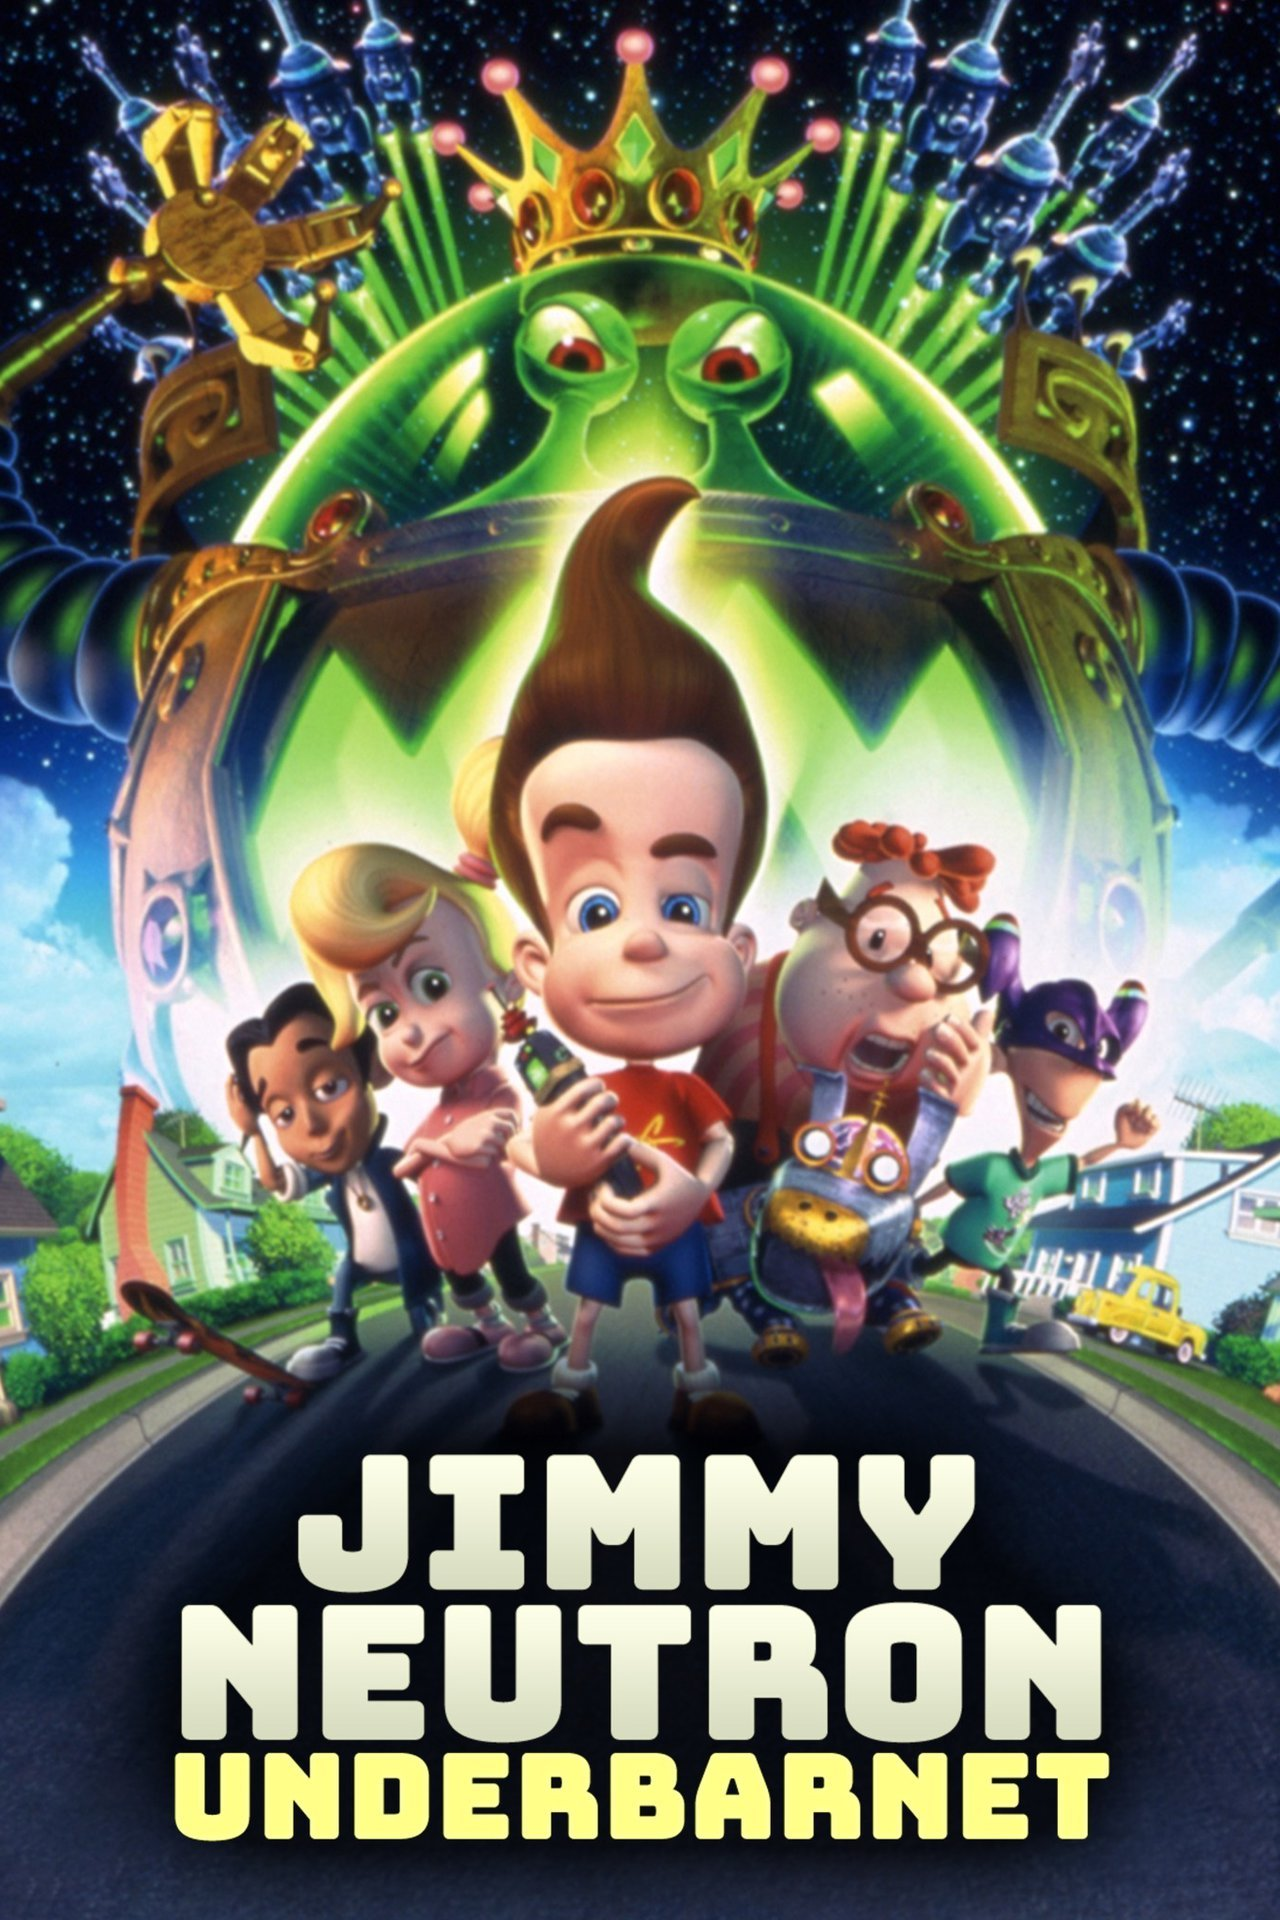 Jimmy Neutron: Underbarnet